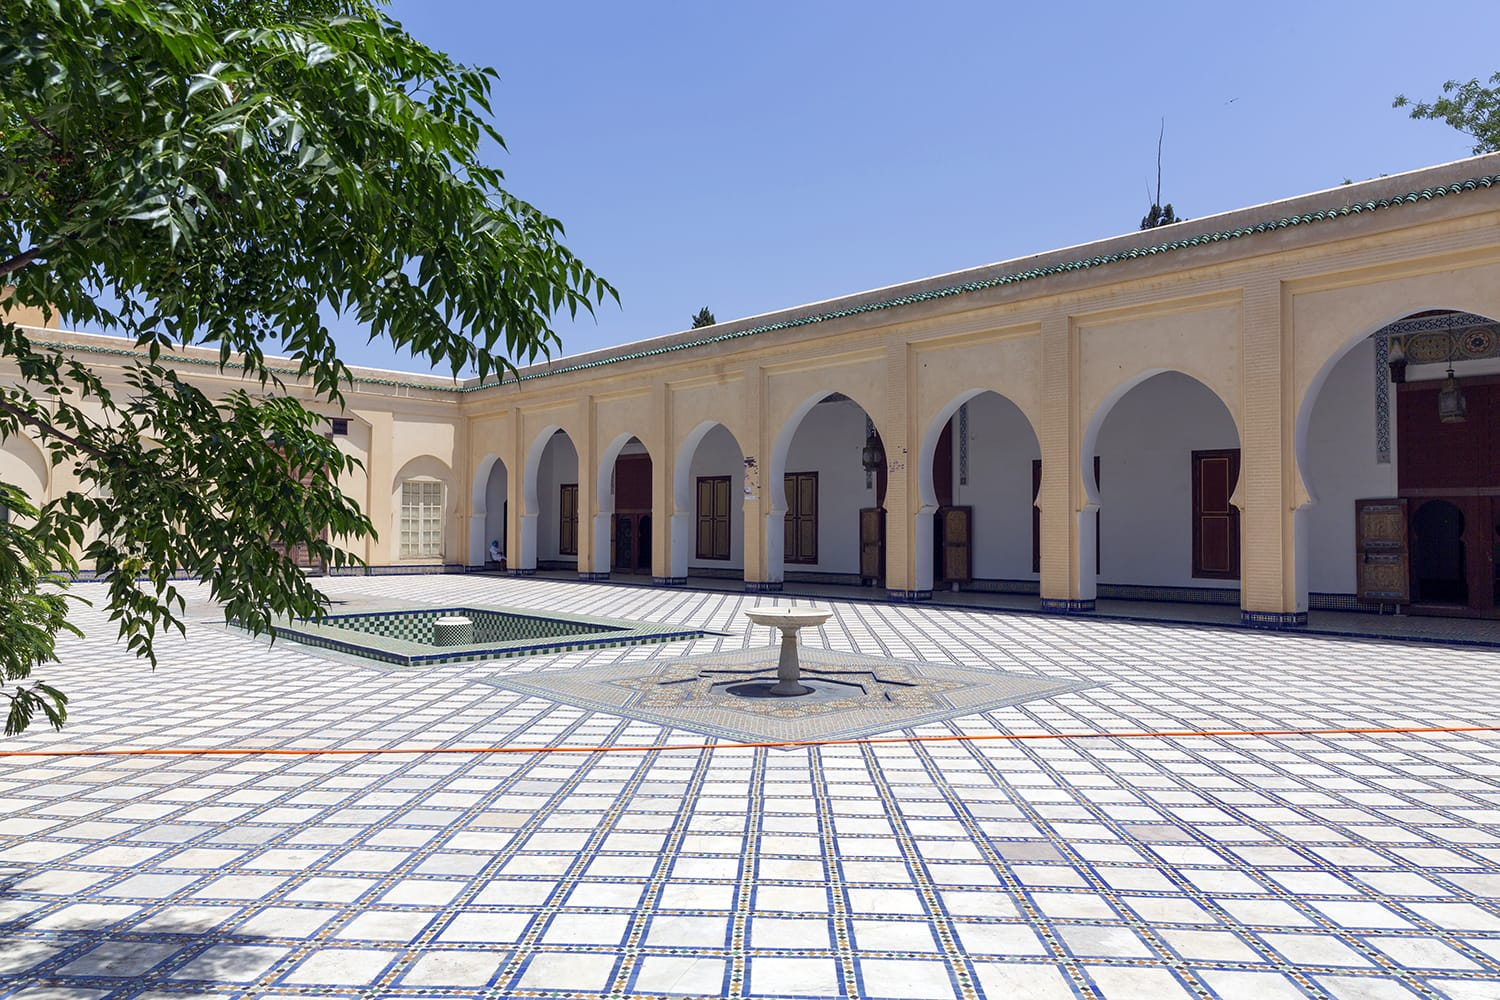 The courtyard of the Dar Batha Museum of Fes, Morocco